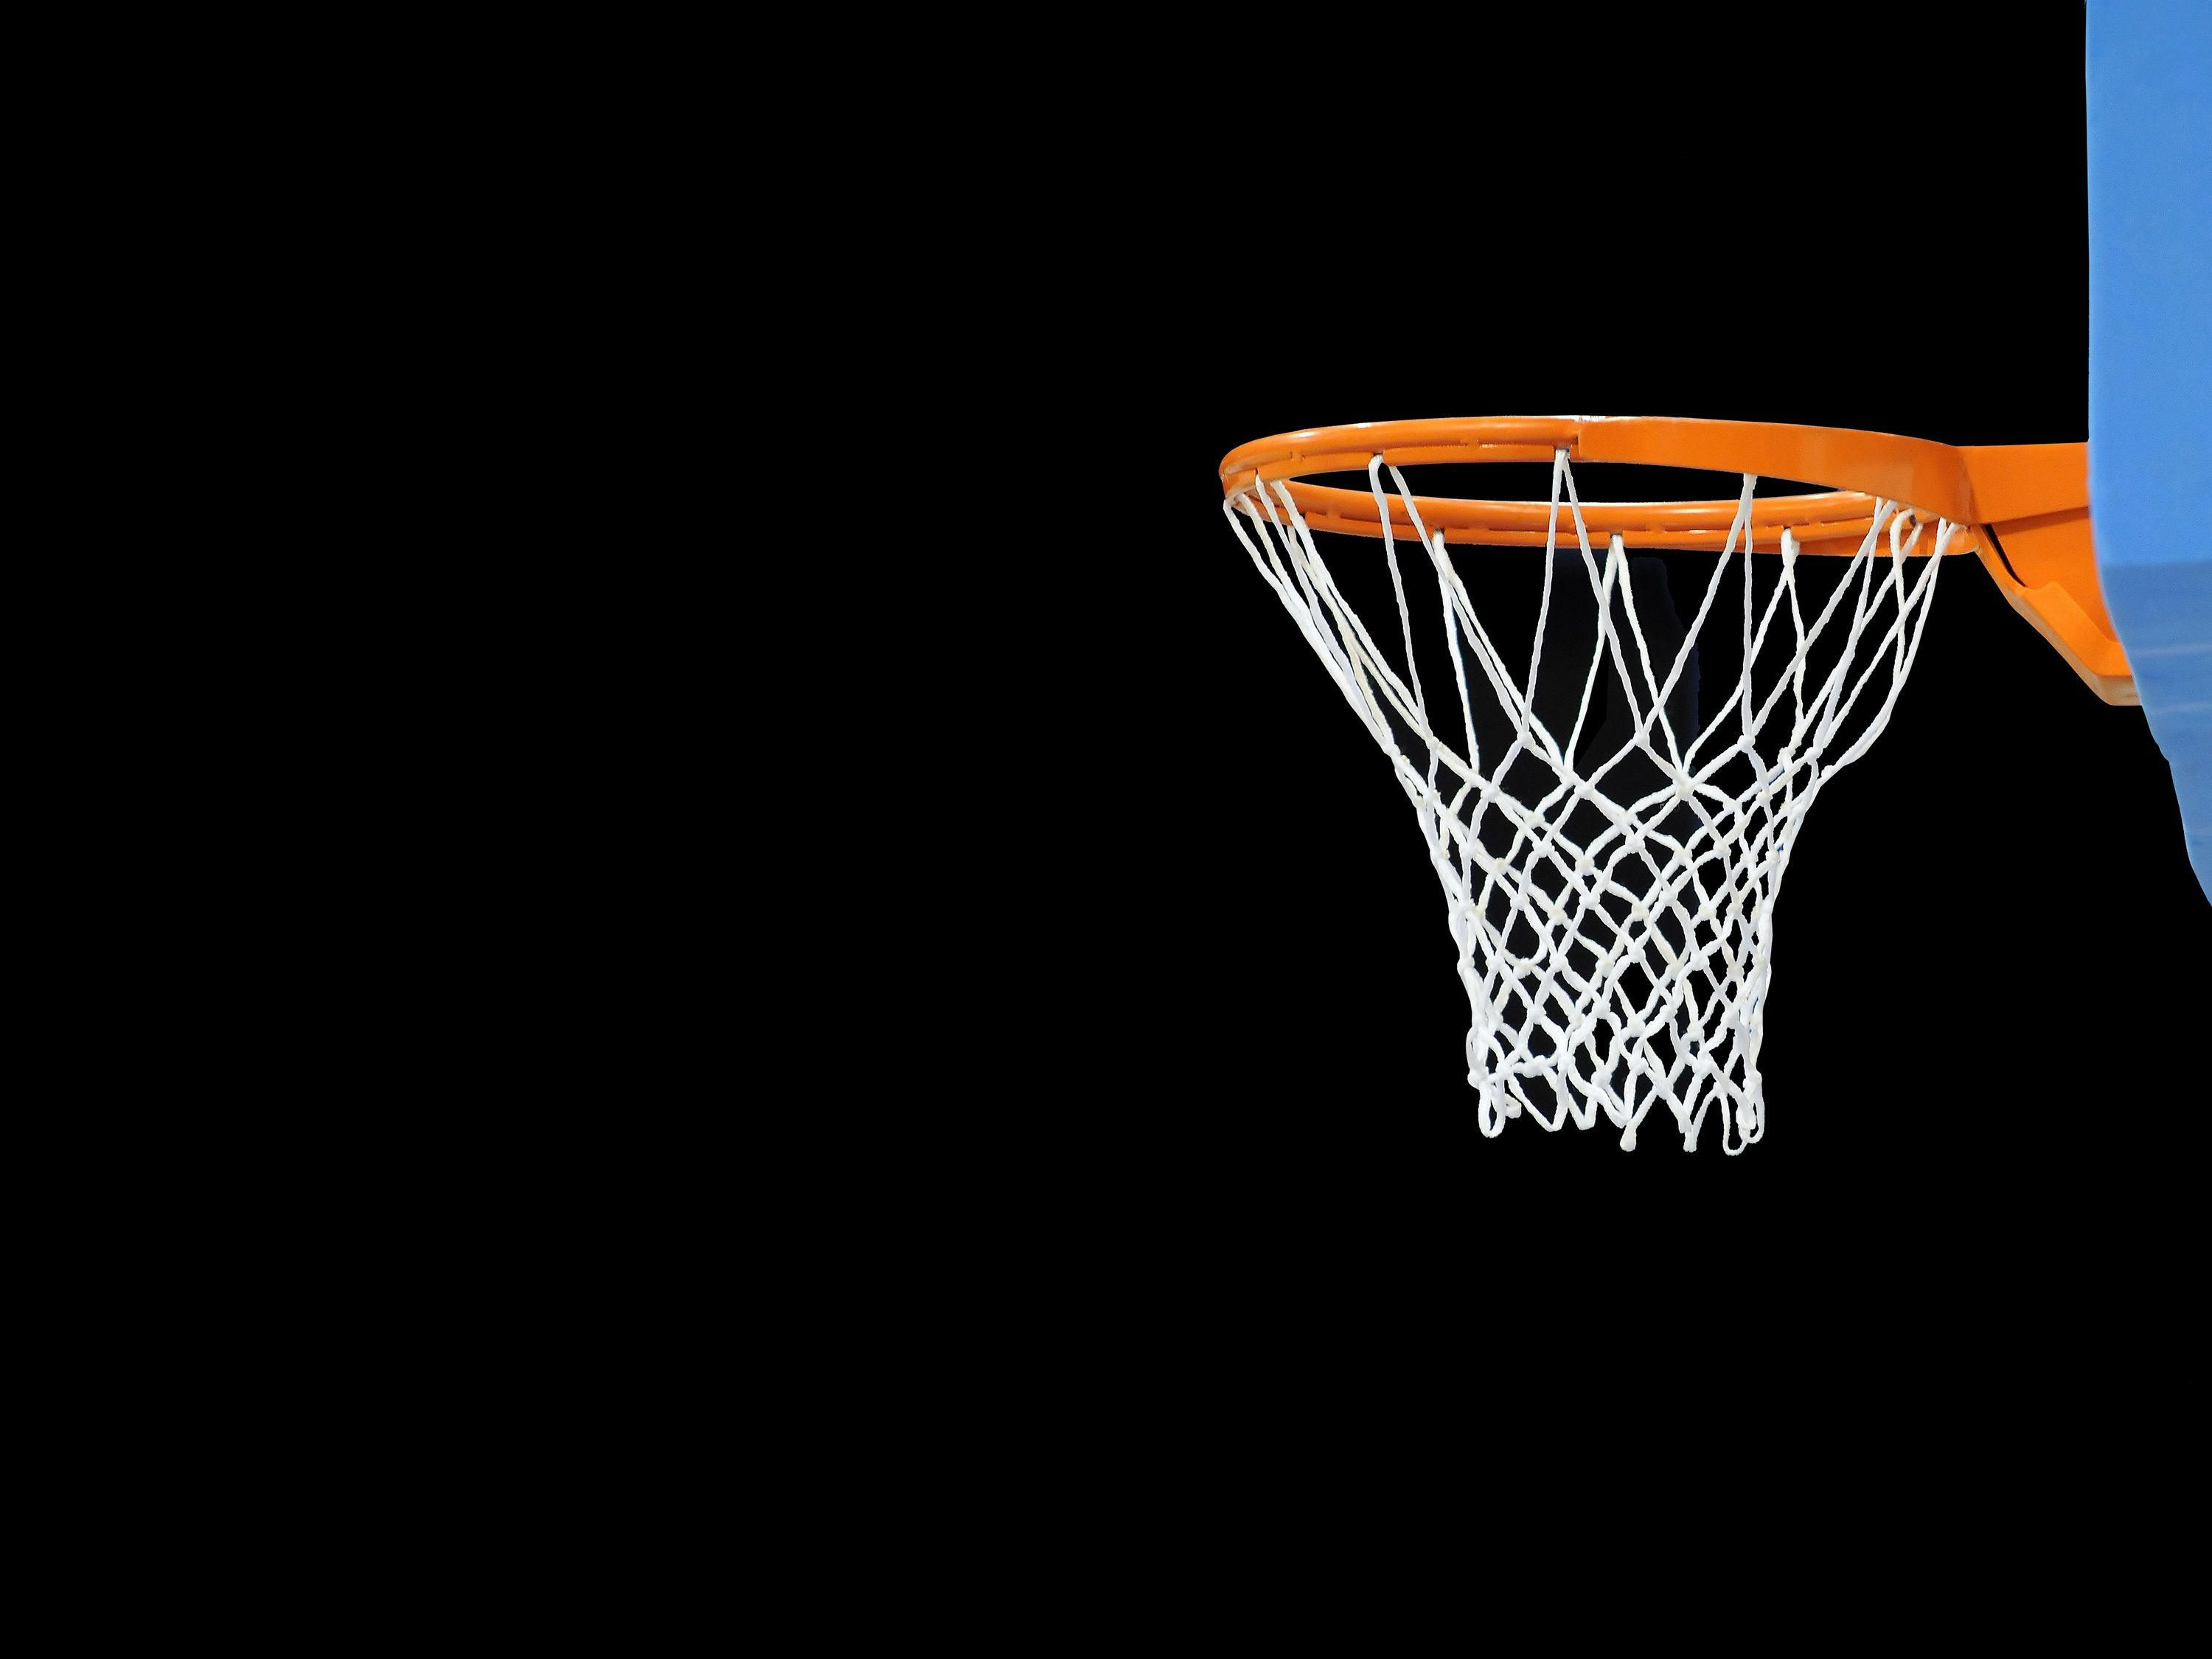 basketball hoop black background - Google Search ...